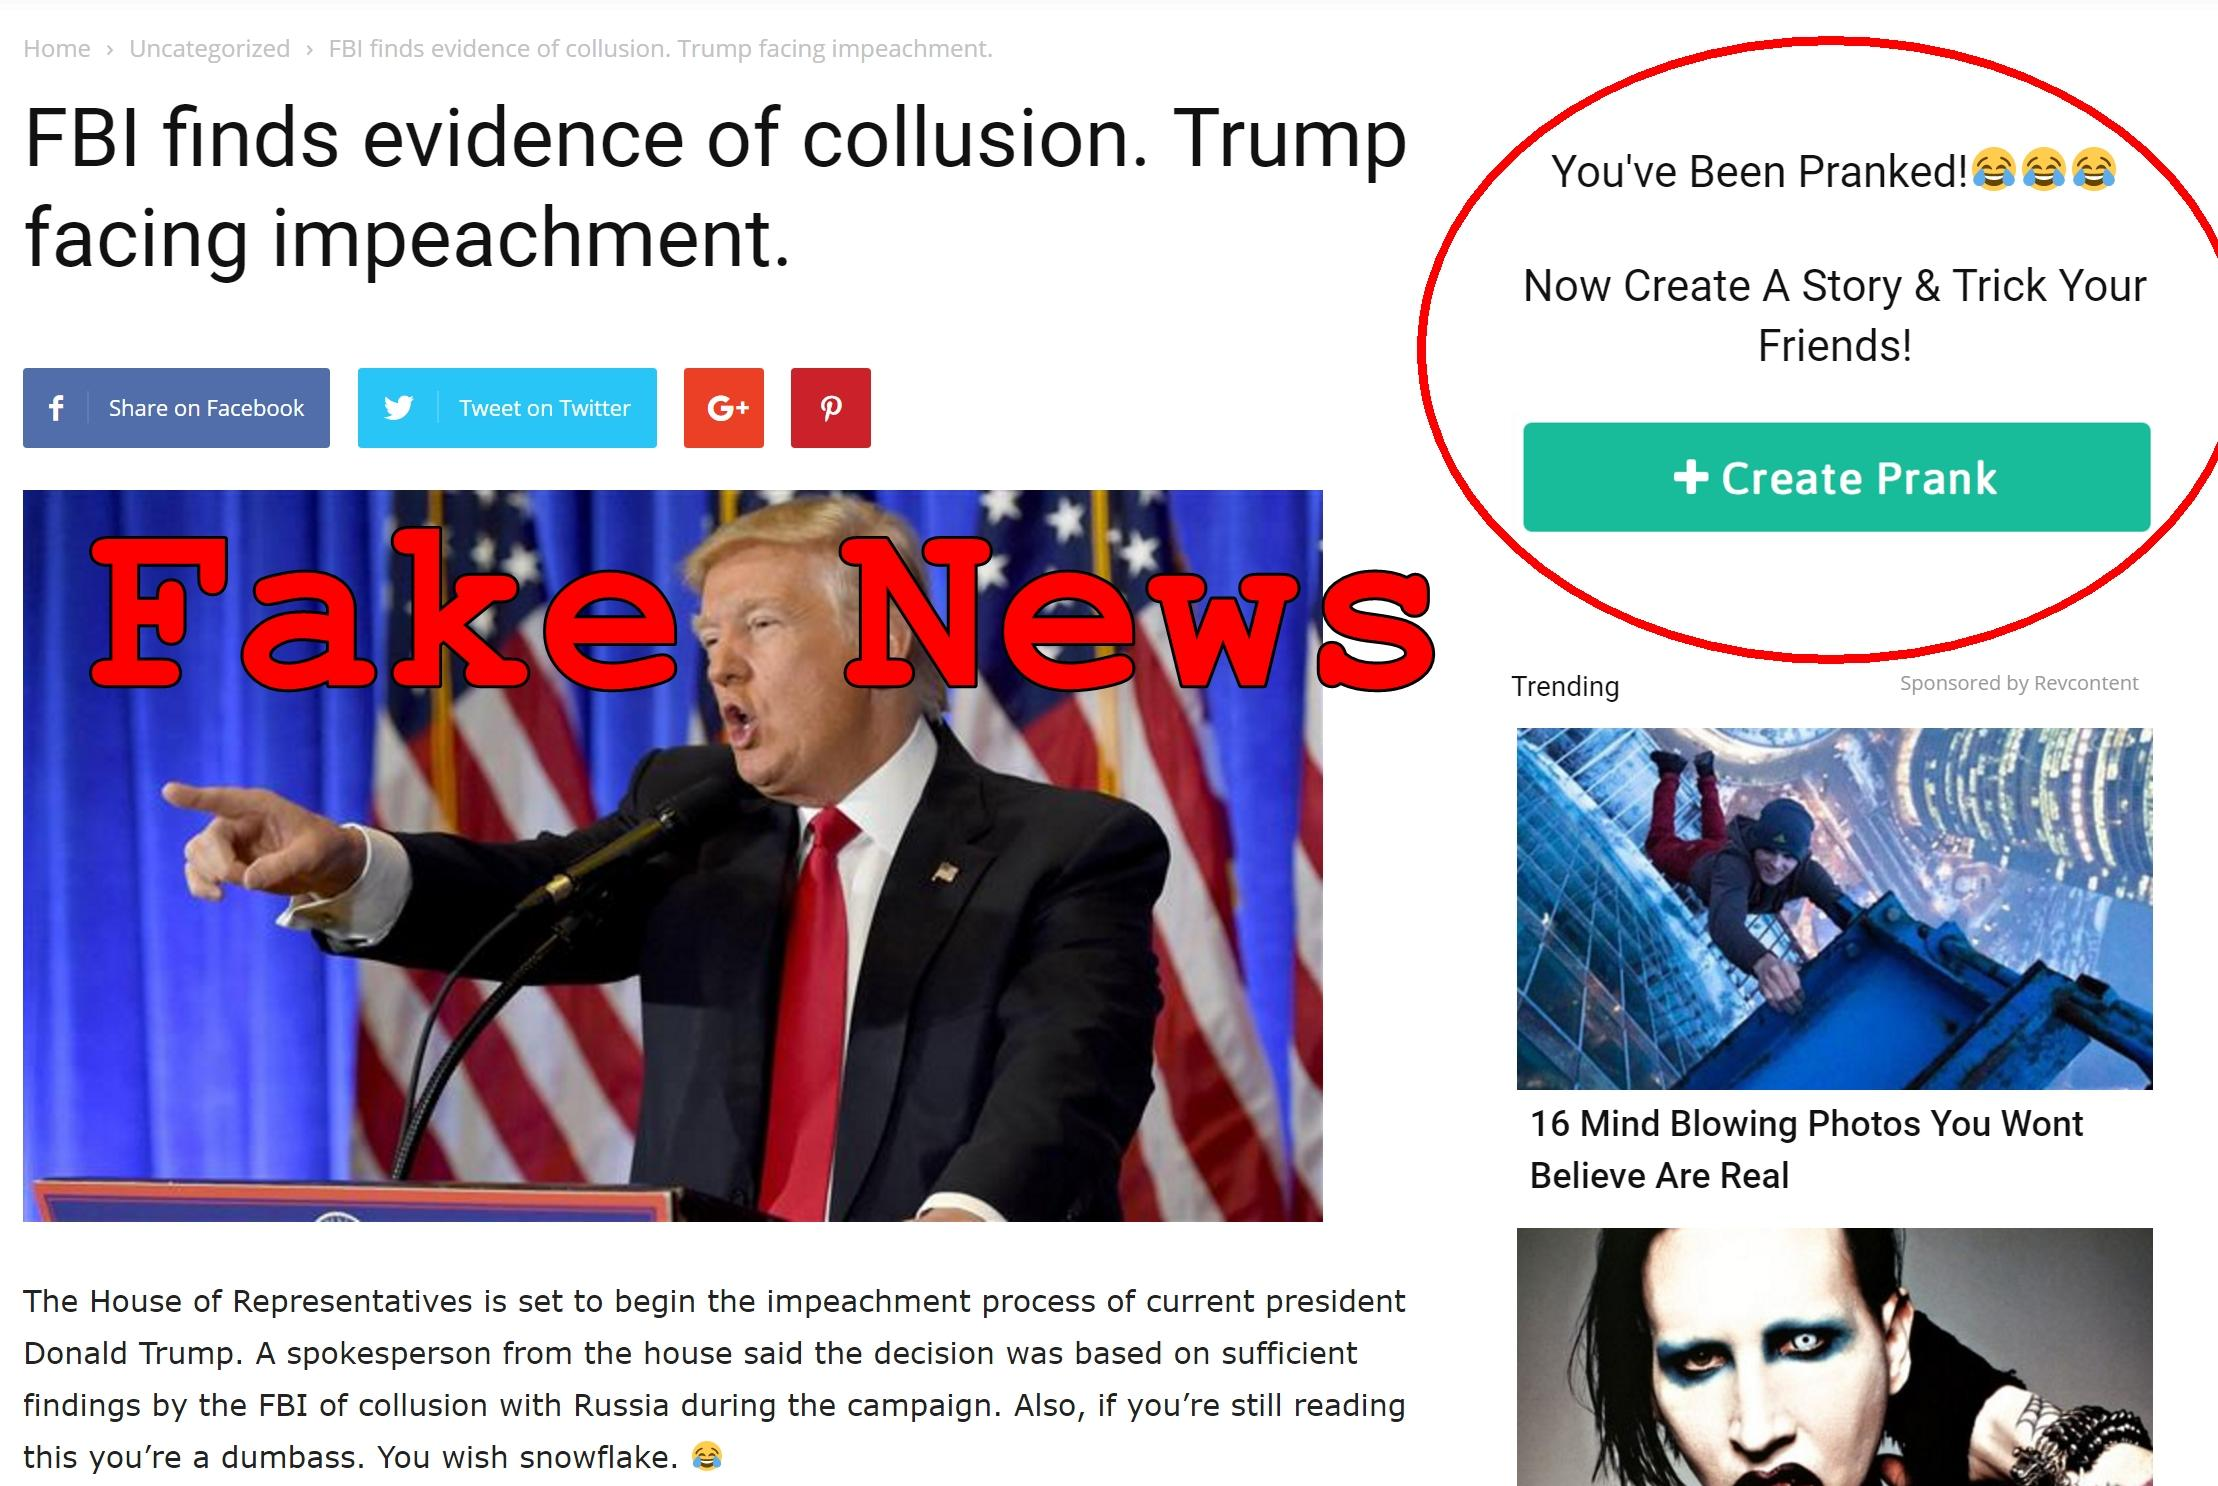 Fake News: FBI Did NOT Find Evidence of Collusion. Trump NOT Facing Impeachment.